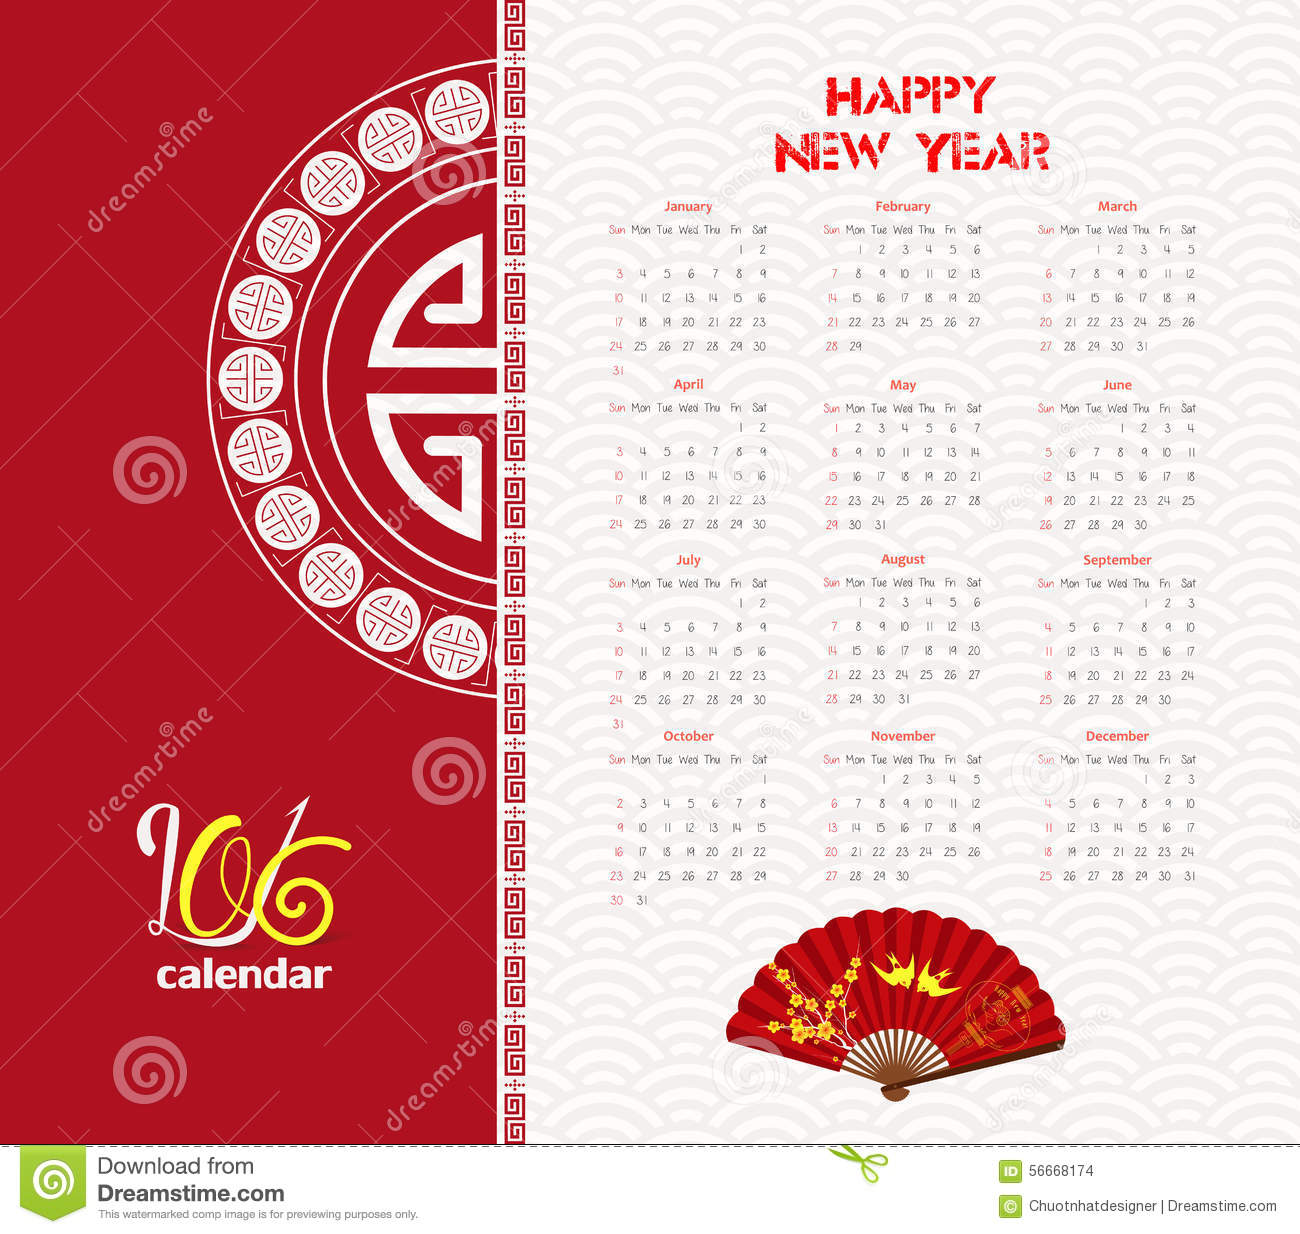 New Year Calendar Design : Calendar tree design for chinese new year celebration